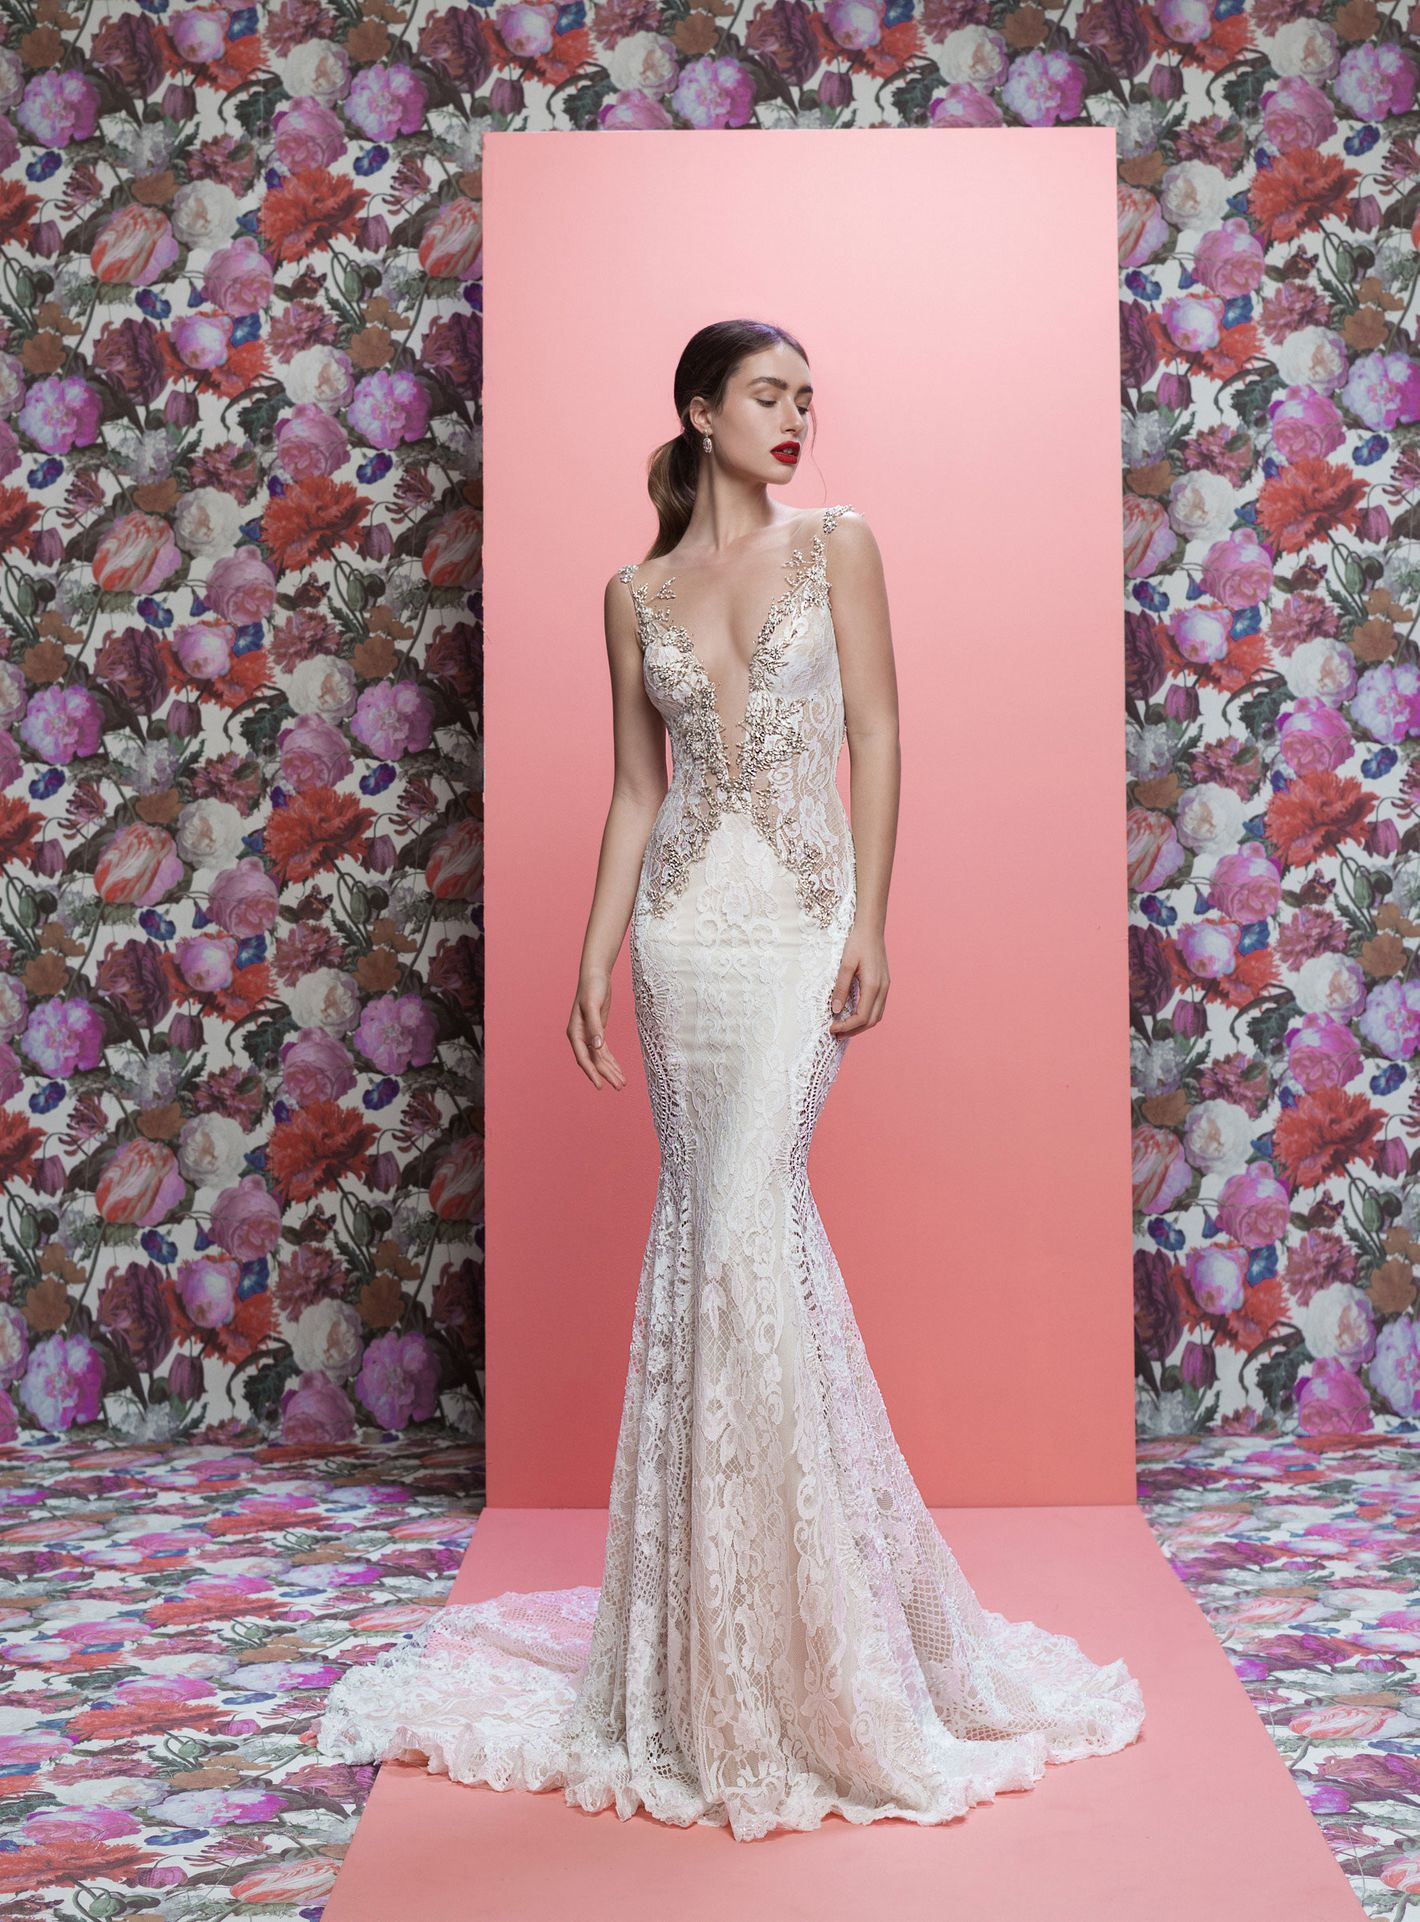 The Most Beautiful Wedding Gowns for Spring 2019